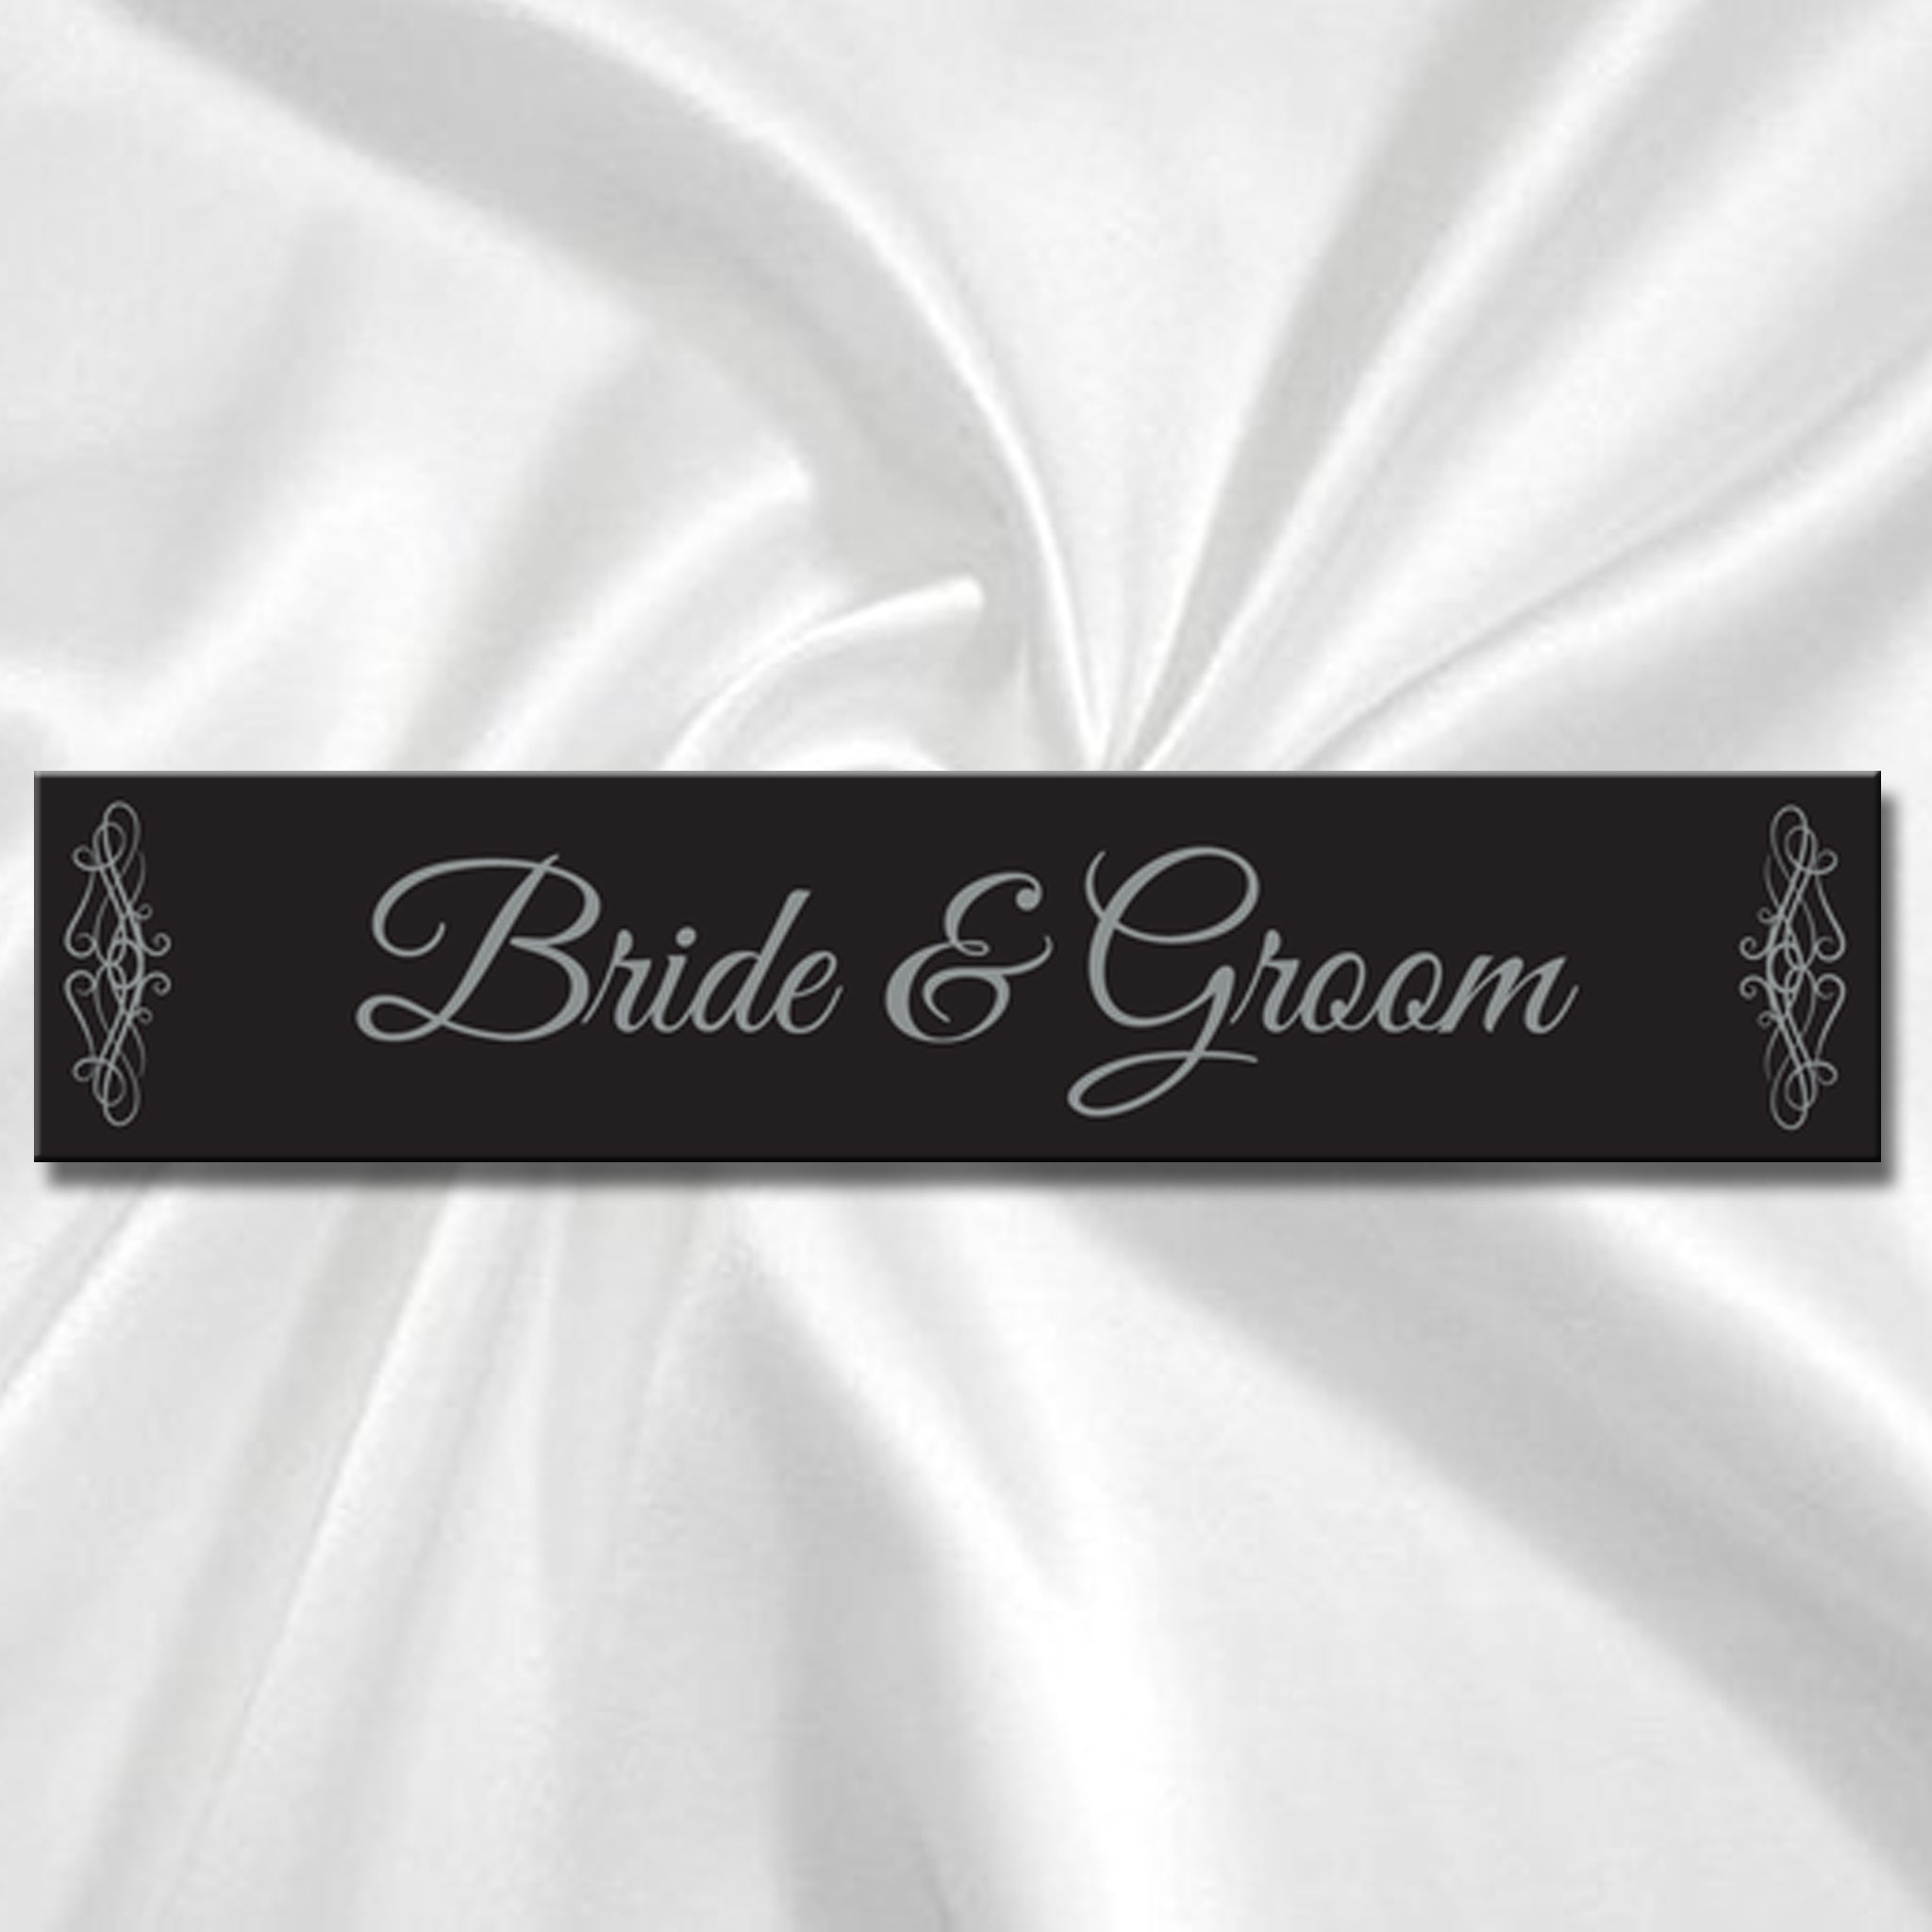 Wedding Car Number Plate - Black & Silver